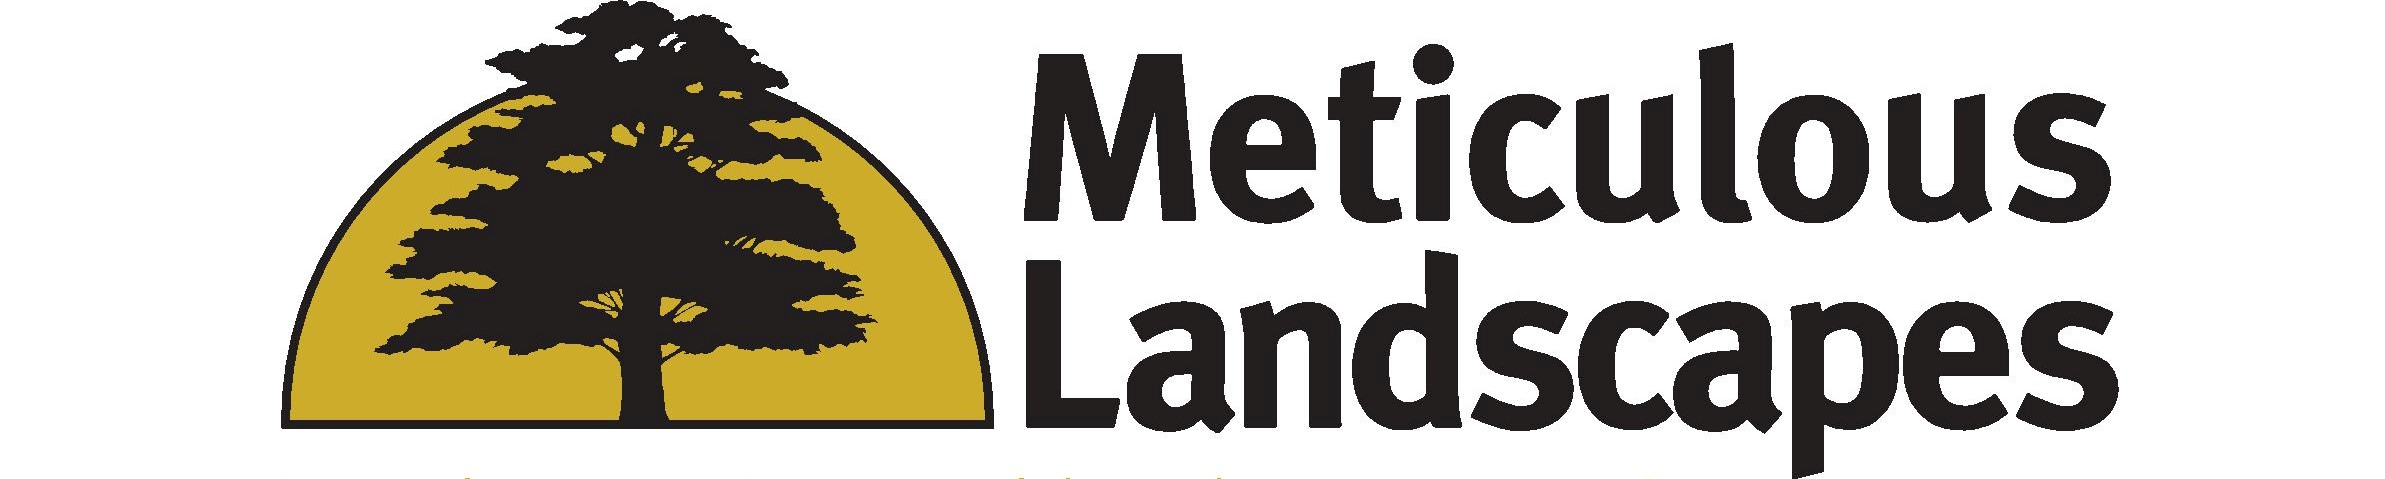 Meticulous Landscapes, Inc.